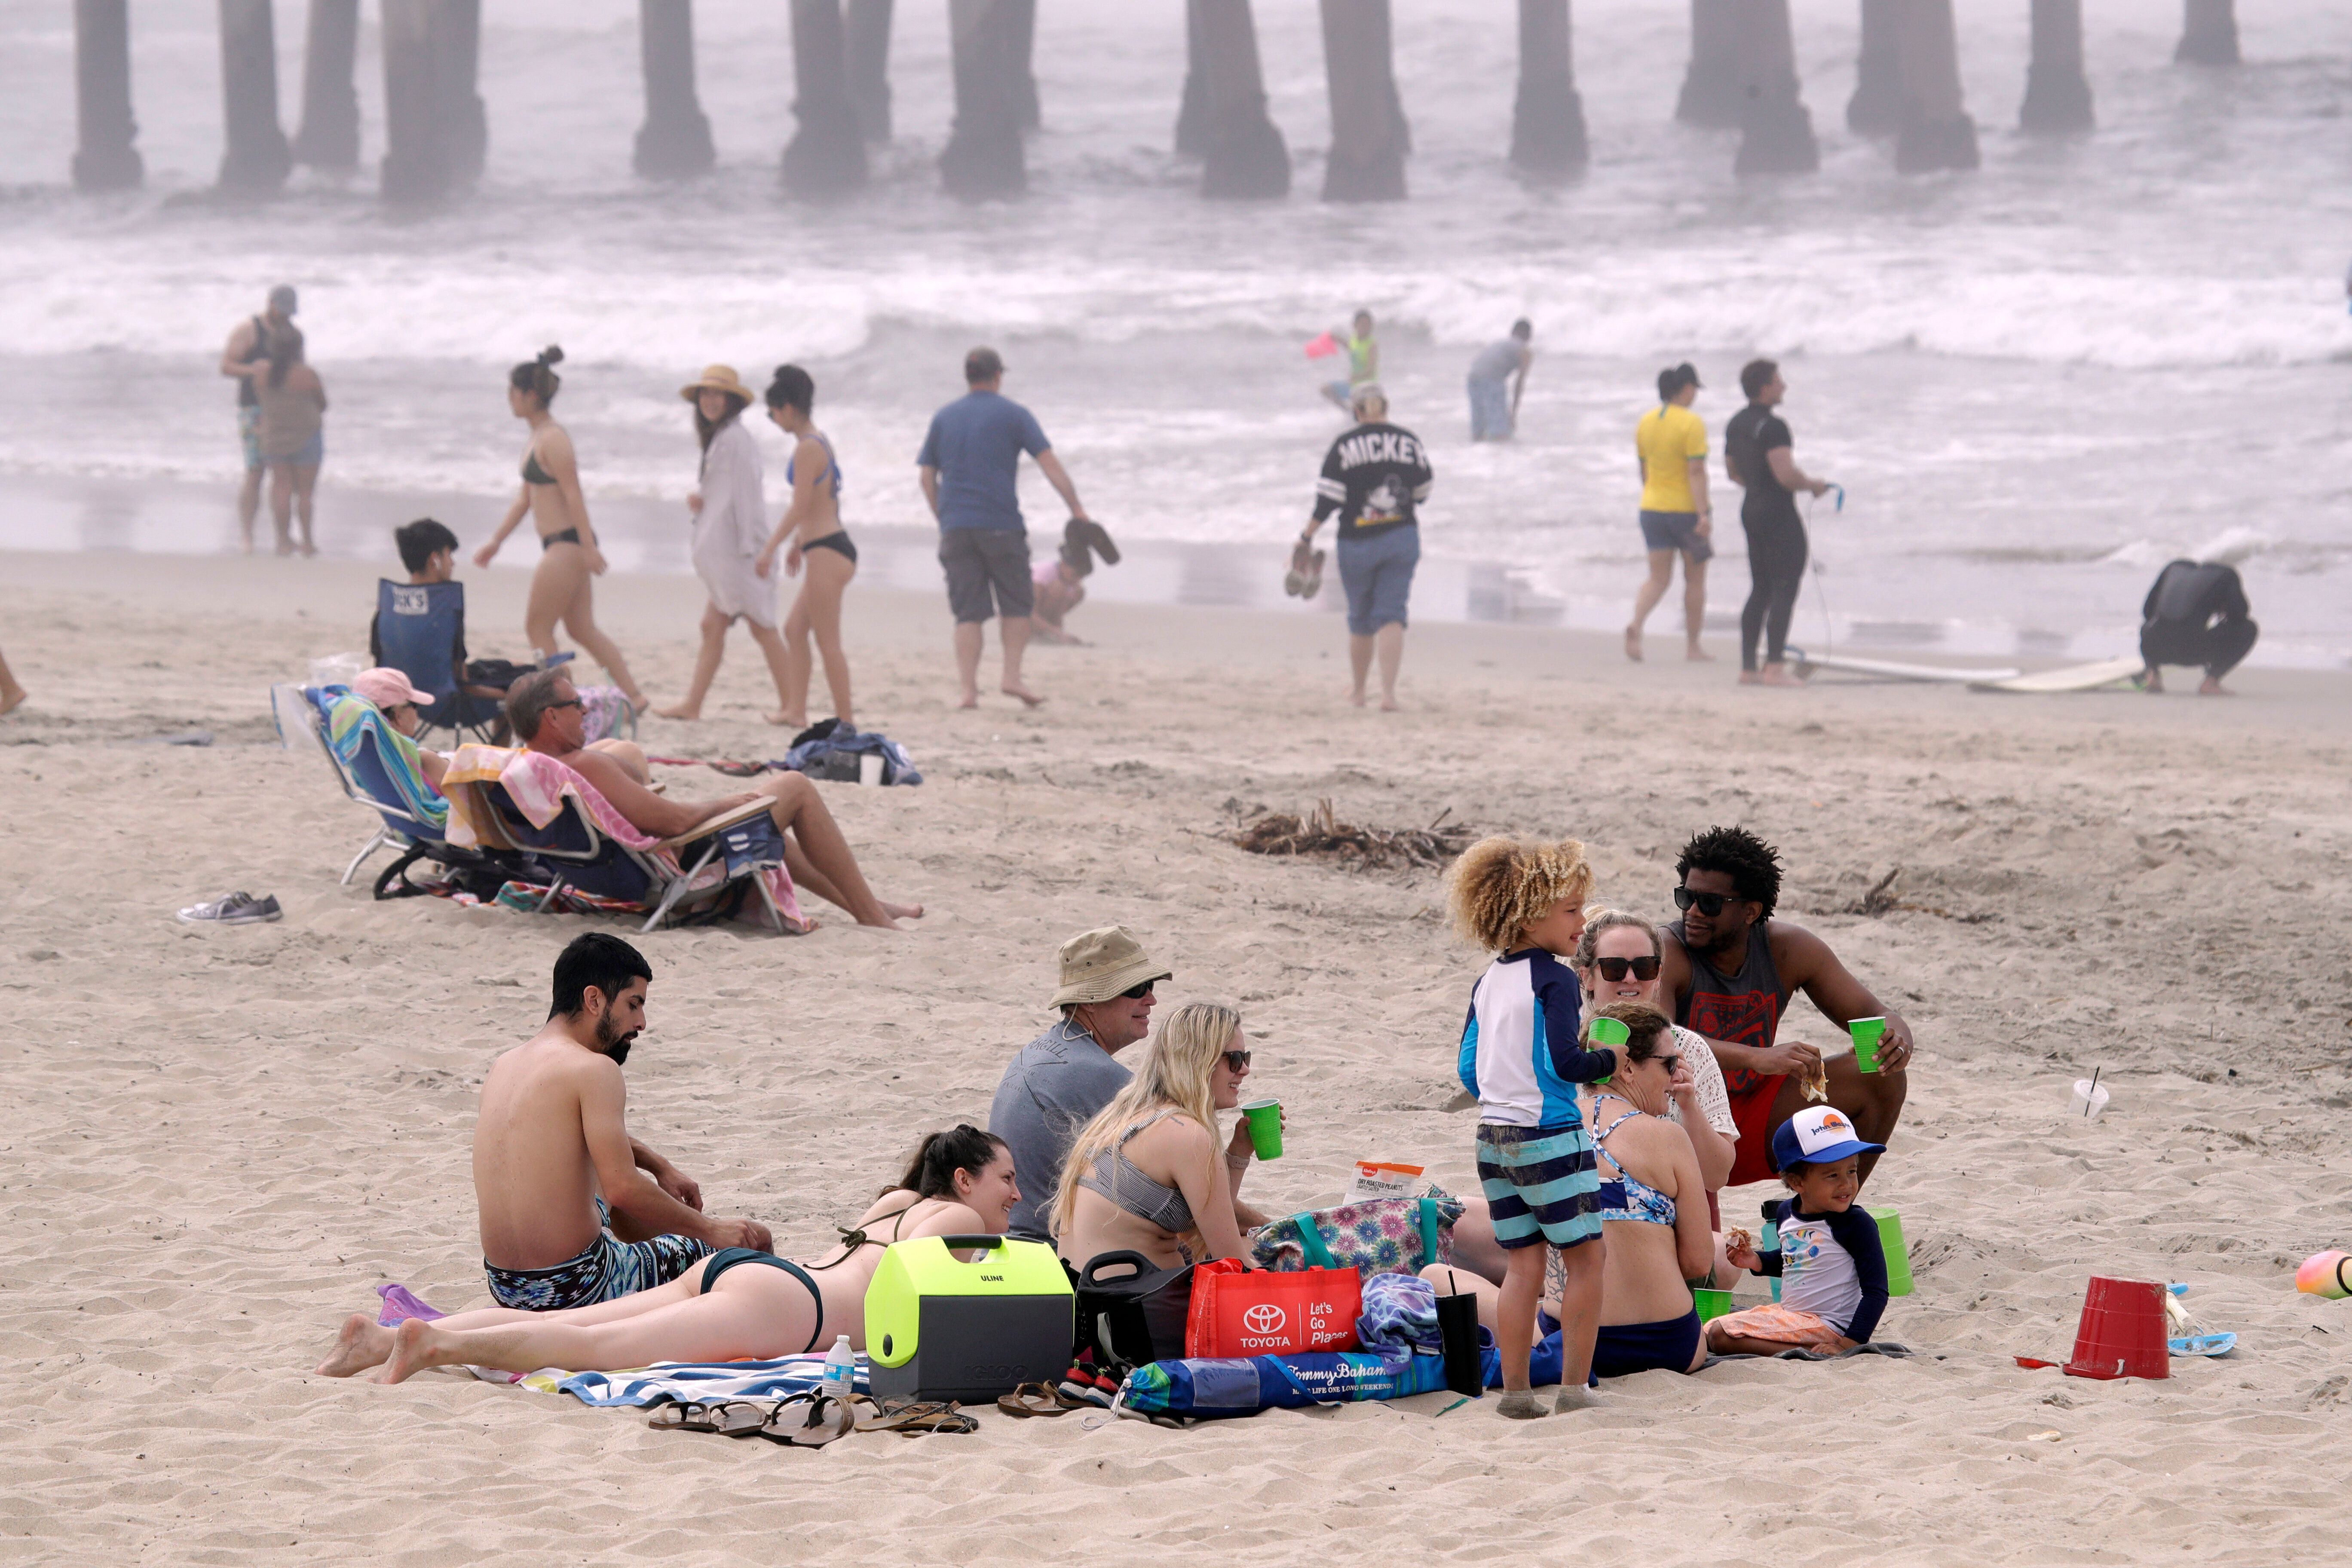 Tens of thousands of people flocked to the seashore last weekend during a heatwave despite Gov. Gavin Newsom's stay-at-home o